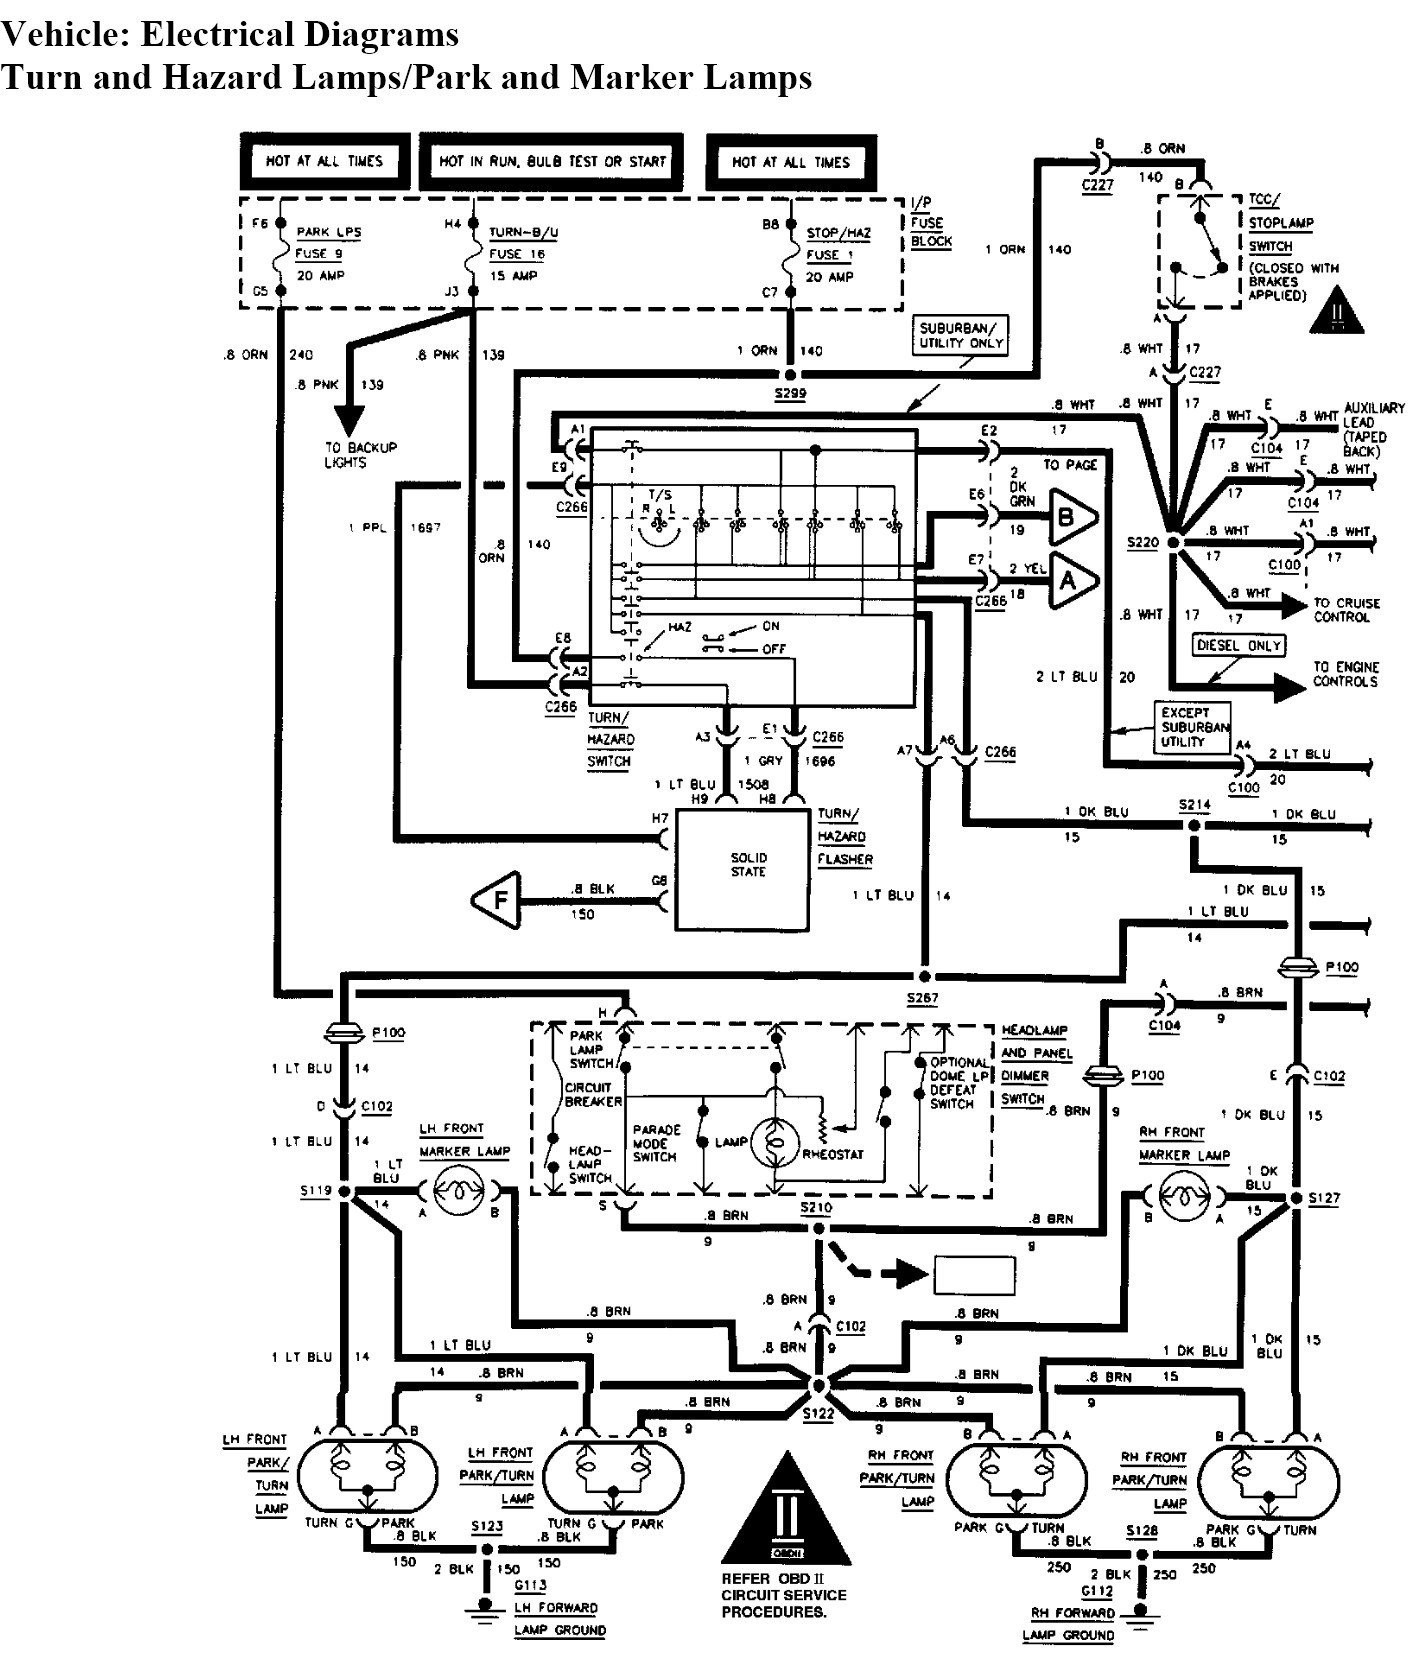 hight resolution of 2004 chevy tahoe parts diagram tail light enthusiast wiring diagrams u2022 tahoe suspension diagram tahoe